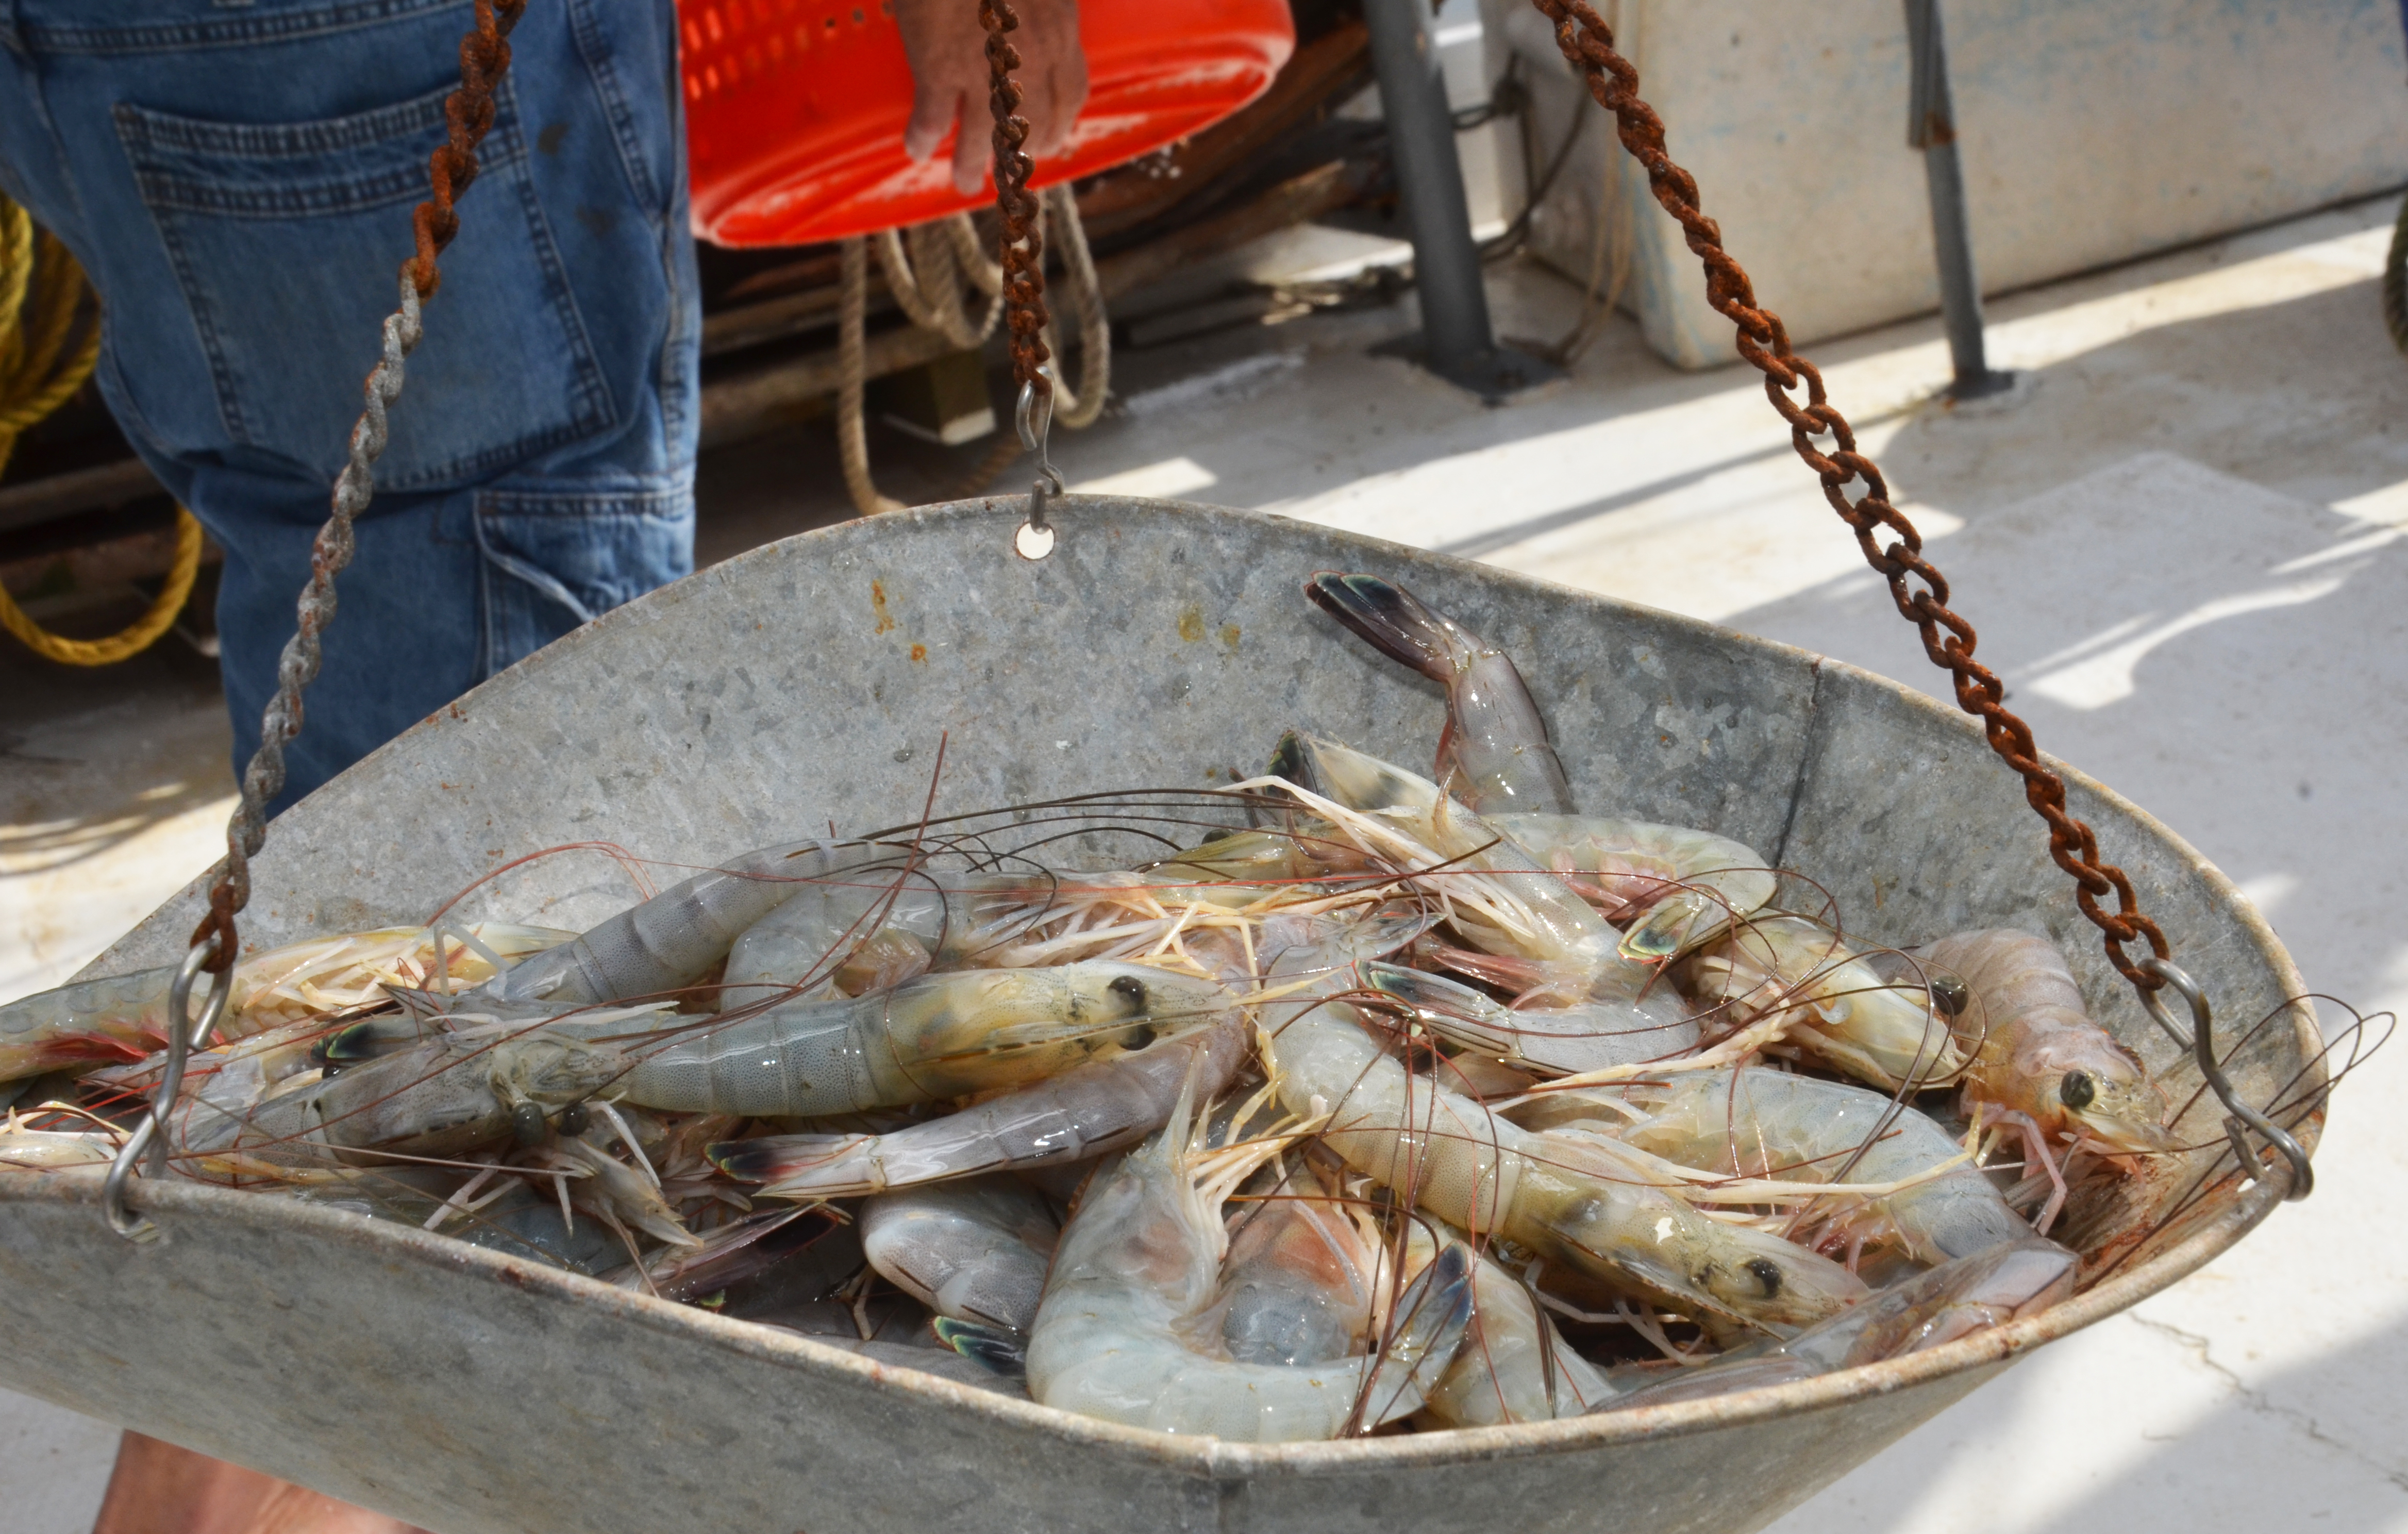 Shrimp being weighed on the scale.